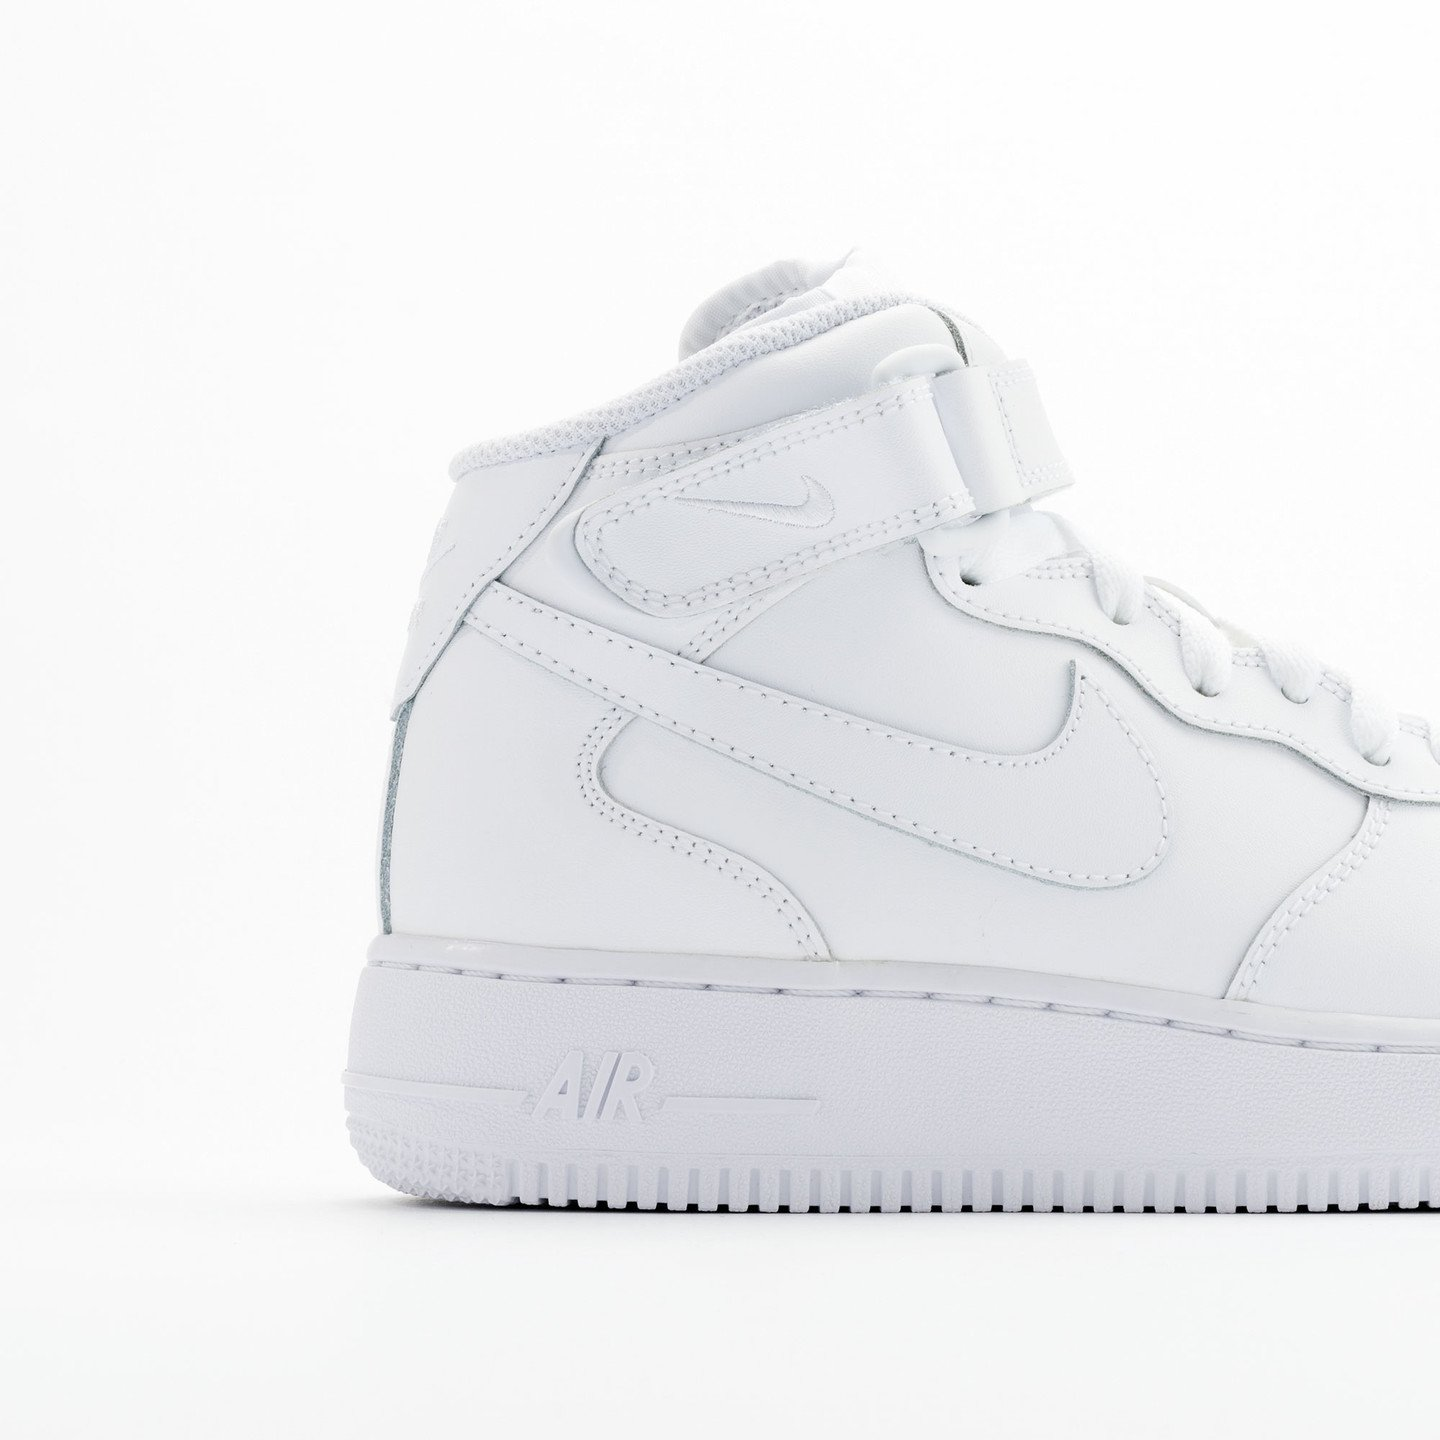 Nike Air Force 1 Mid GS White / White 314195-113-38.5